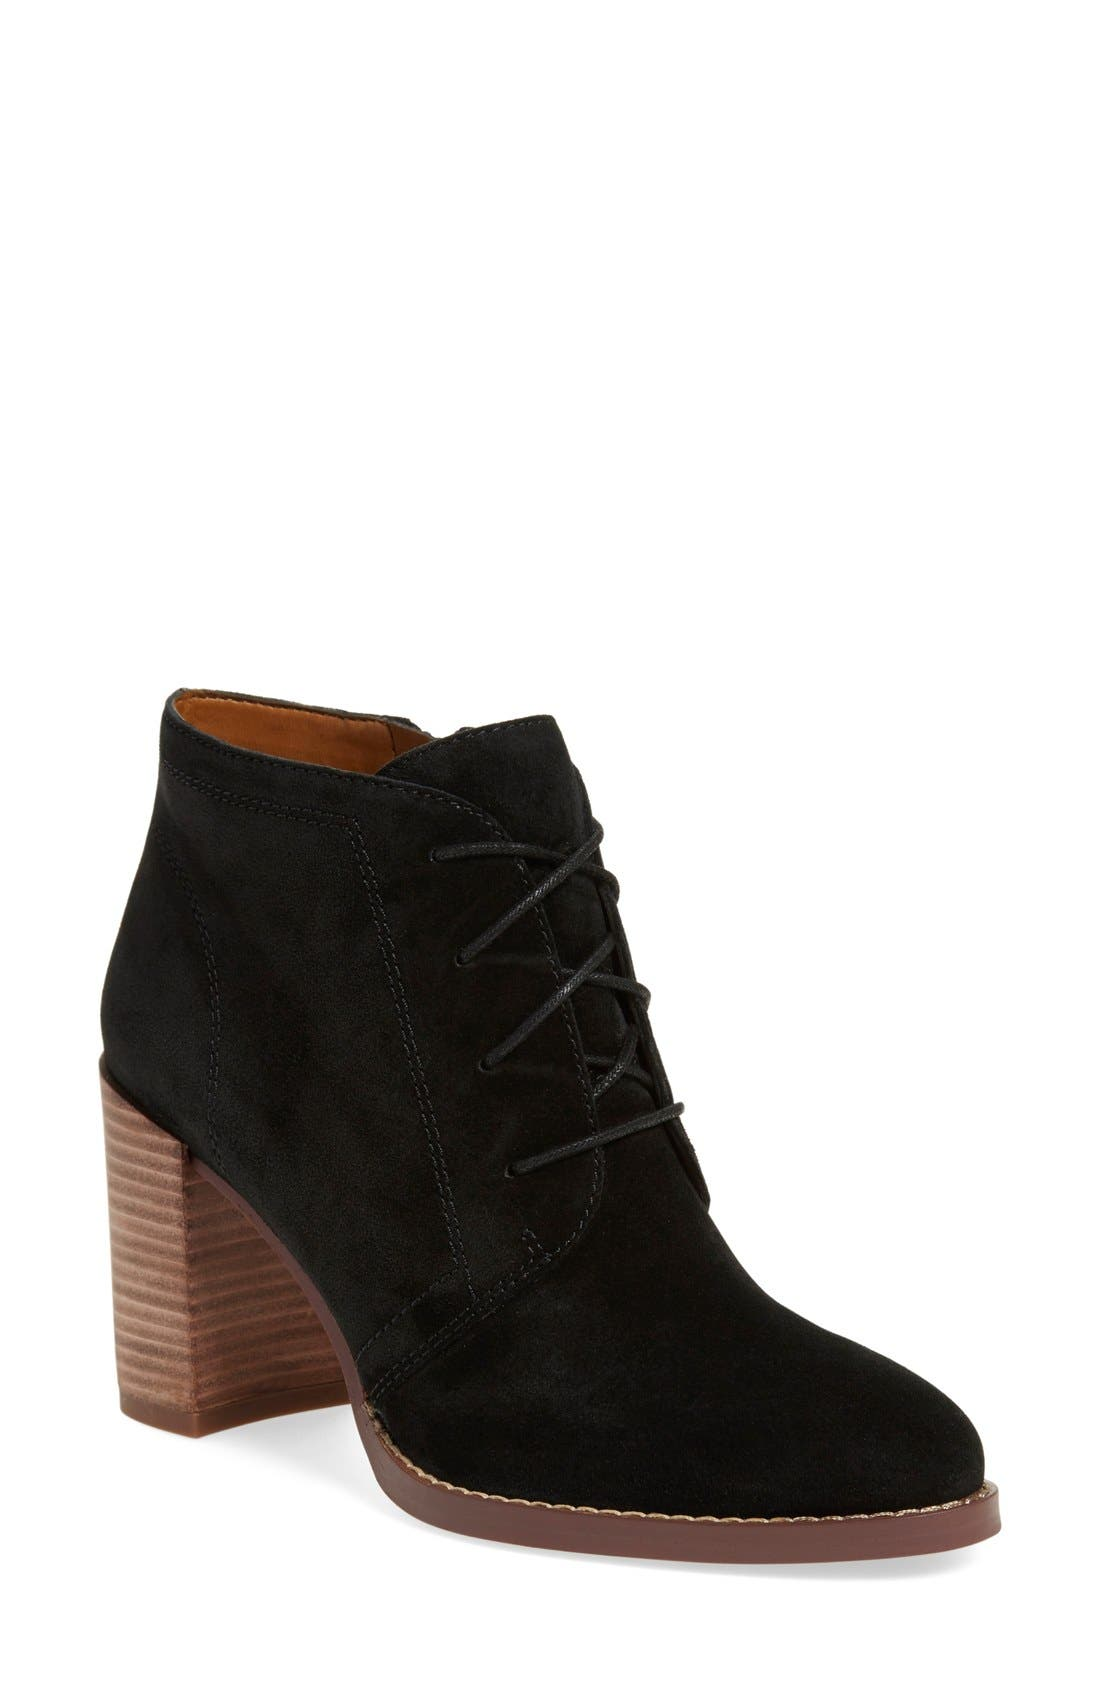 'Omani' Block Heel Bootie,                         Main,                         color, Black Suede